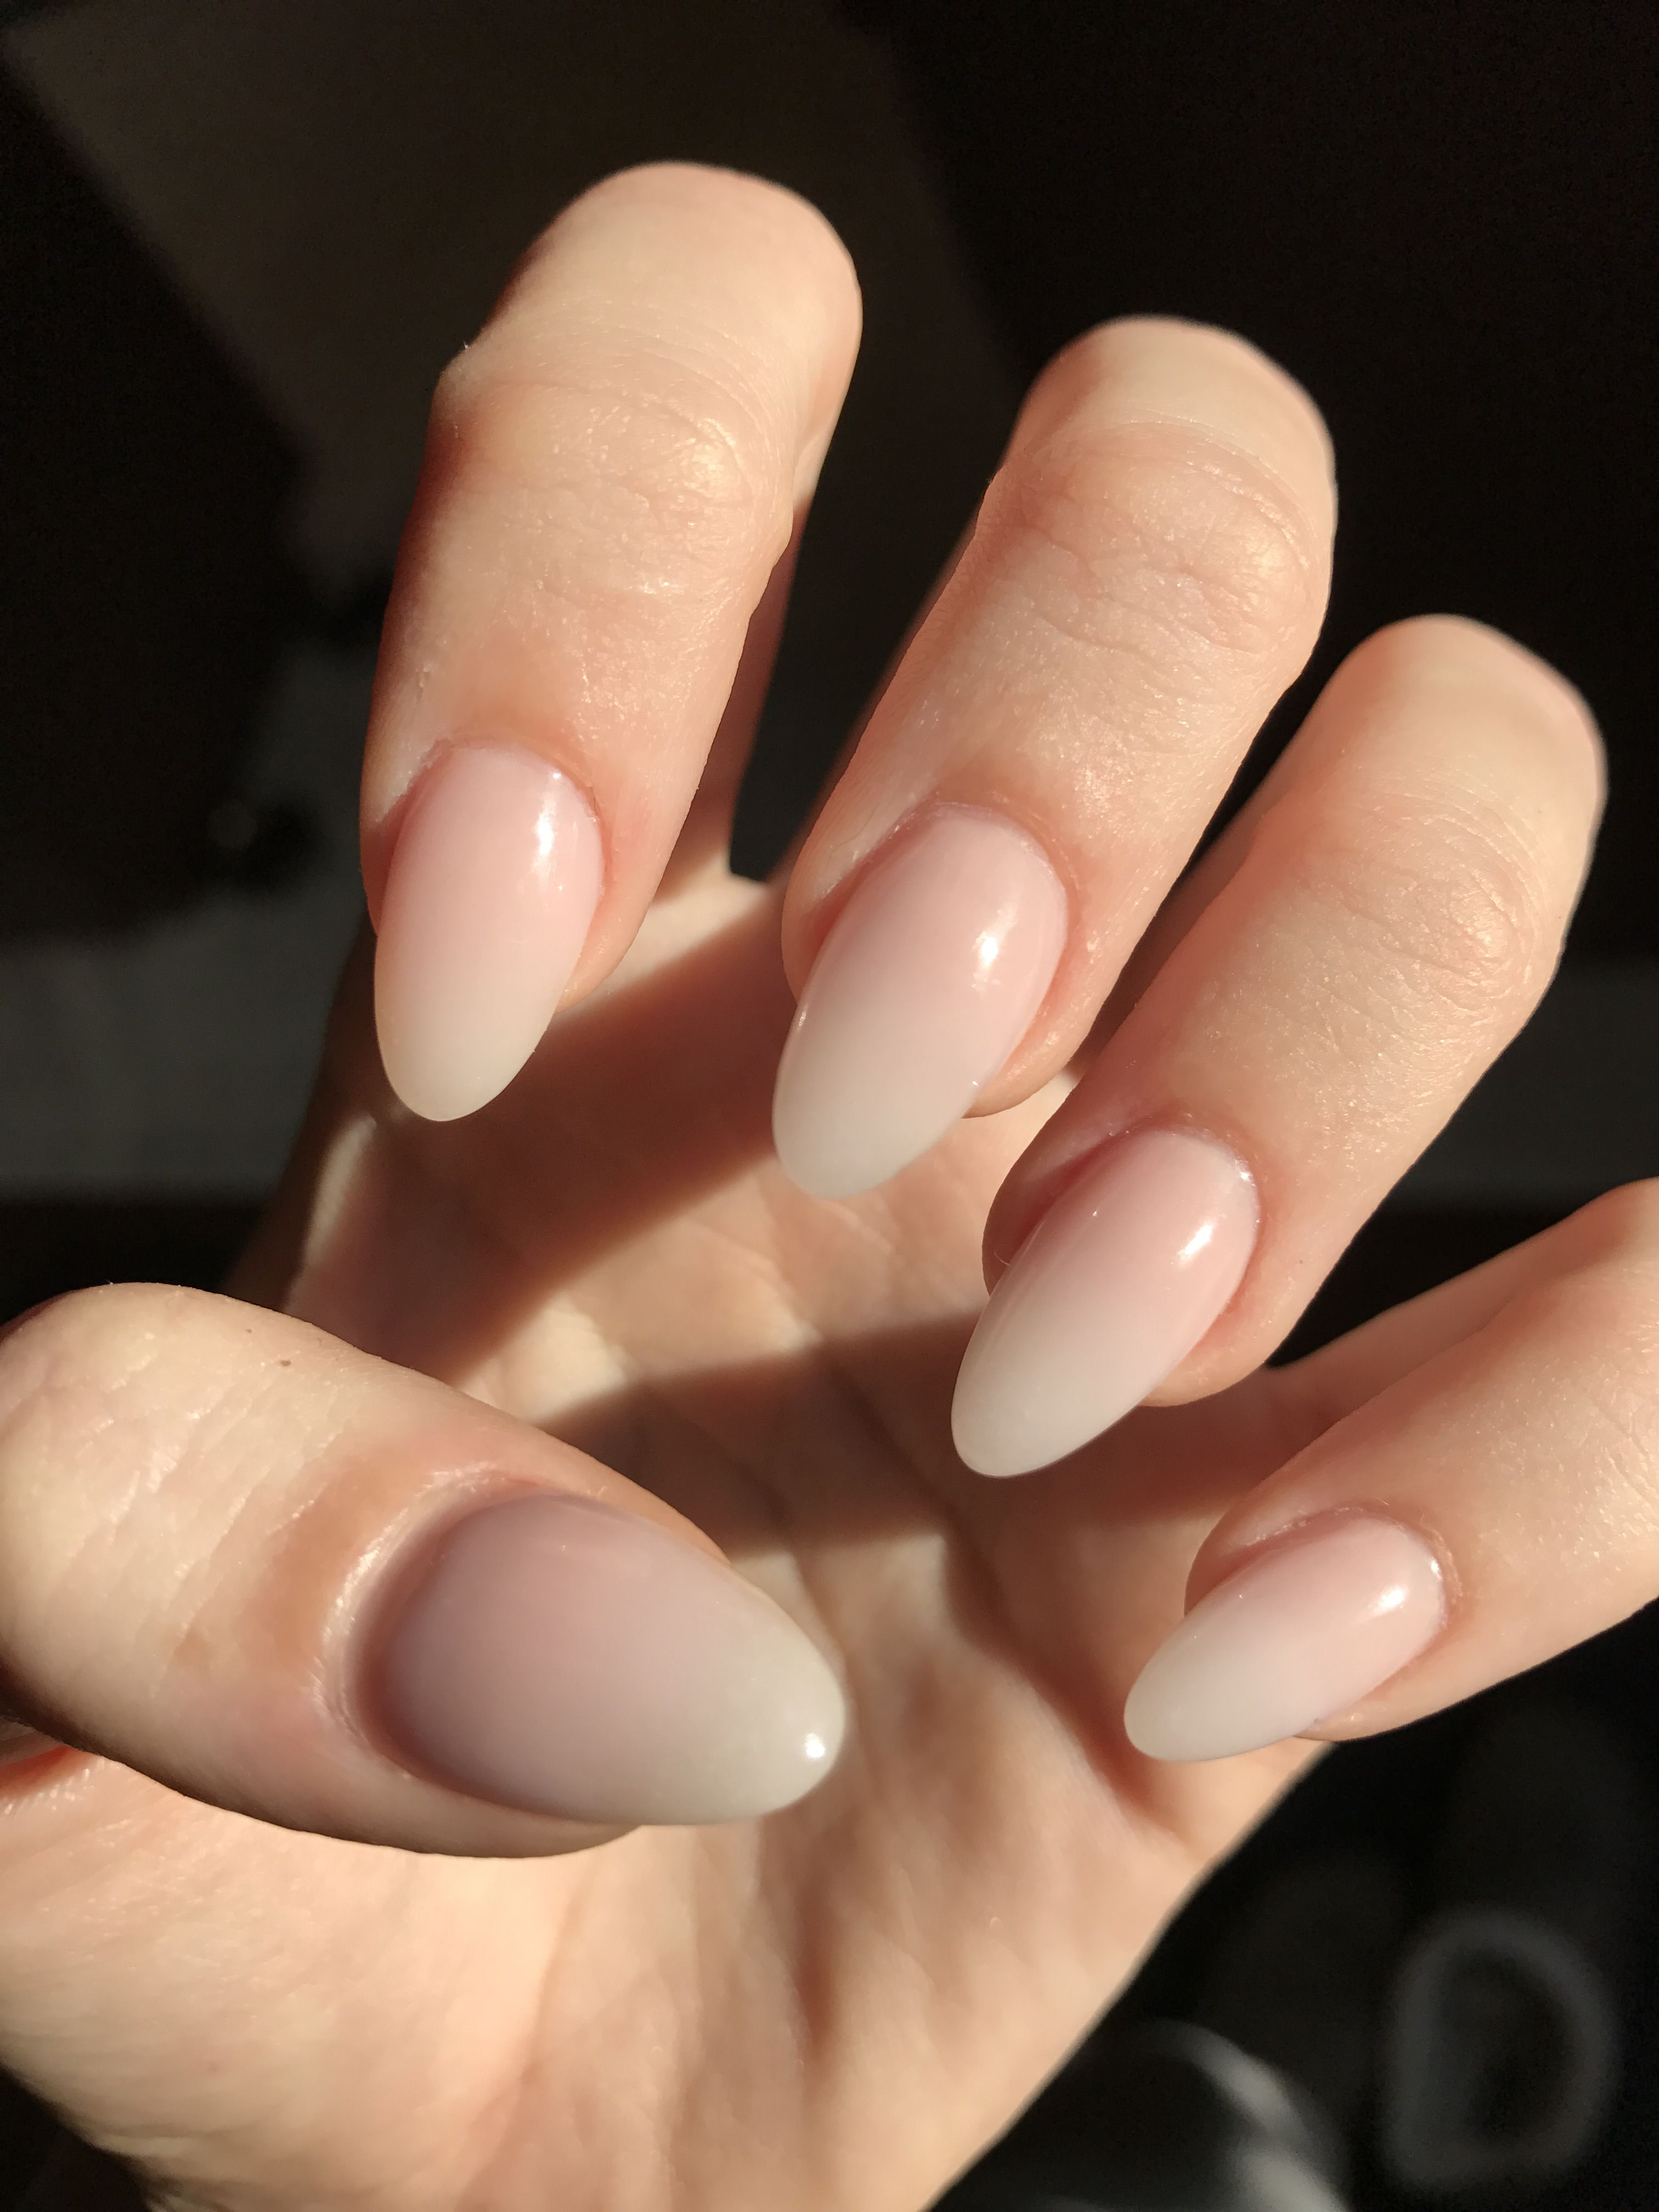 Natural Ombre Almond Acrylic Nails Natural Acrylic Nails Nails Almond Acrylic Nails